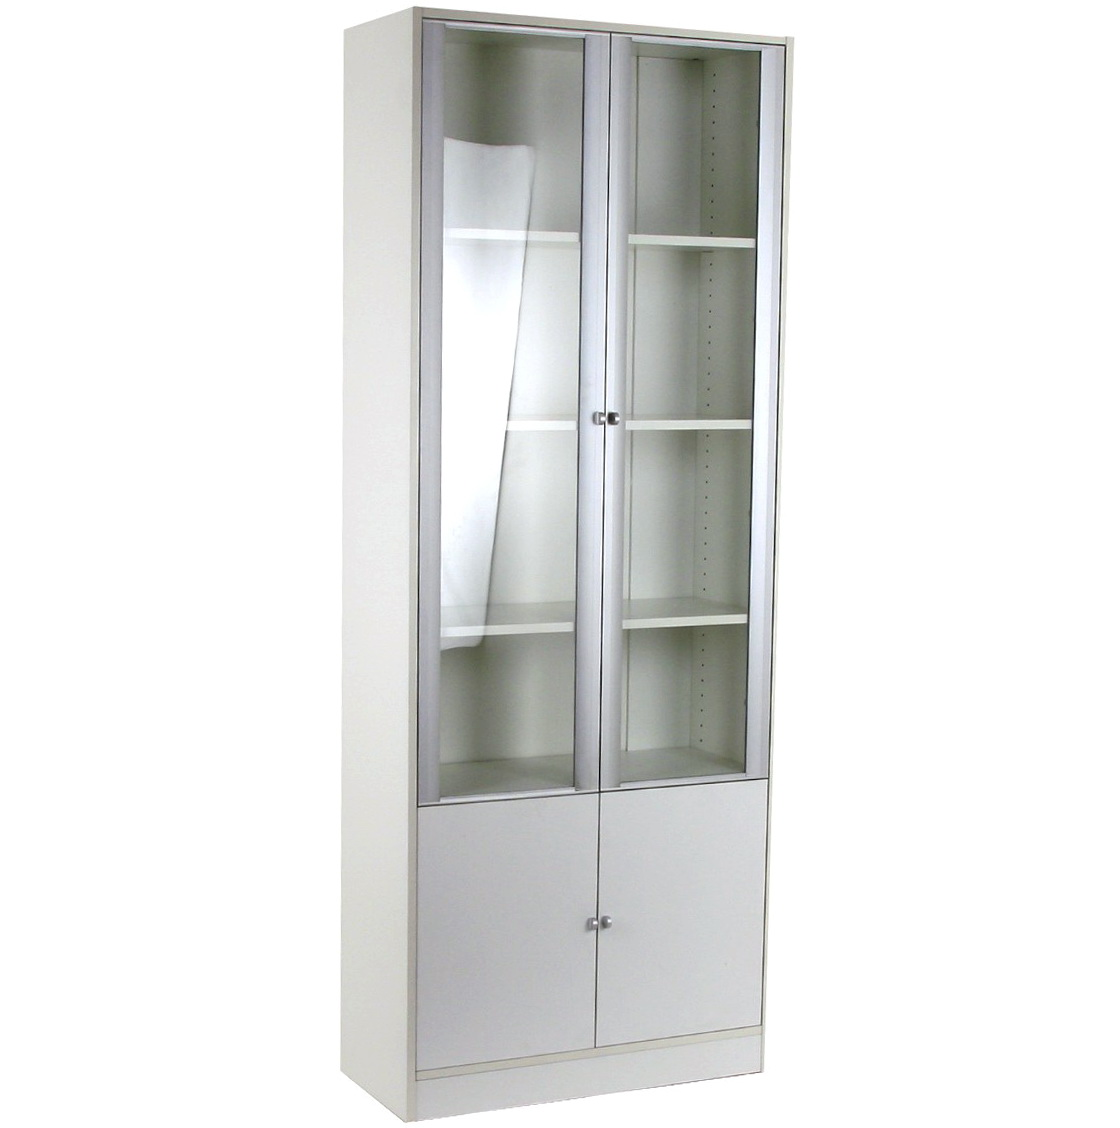 source doors family bookcase wall door your design furniture ideas room glass bookcases wooden with biz white best for themiracle